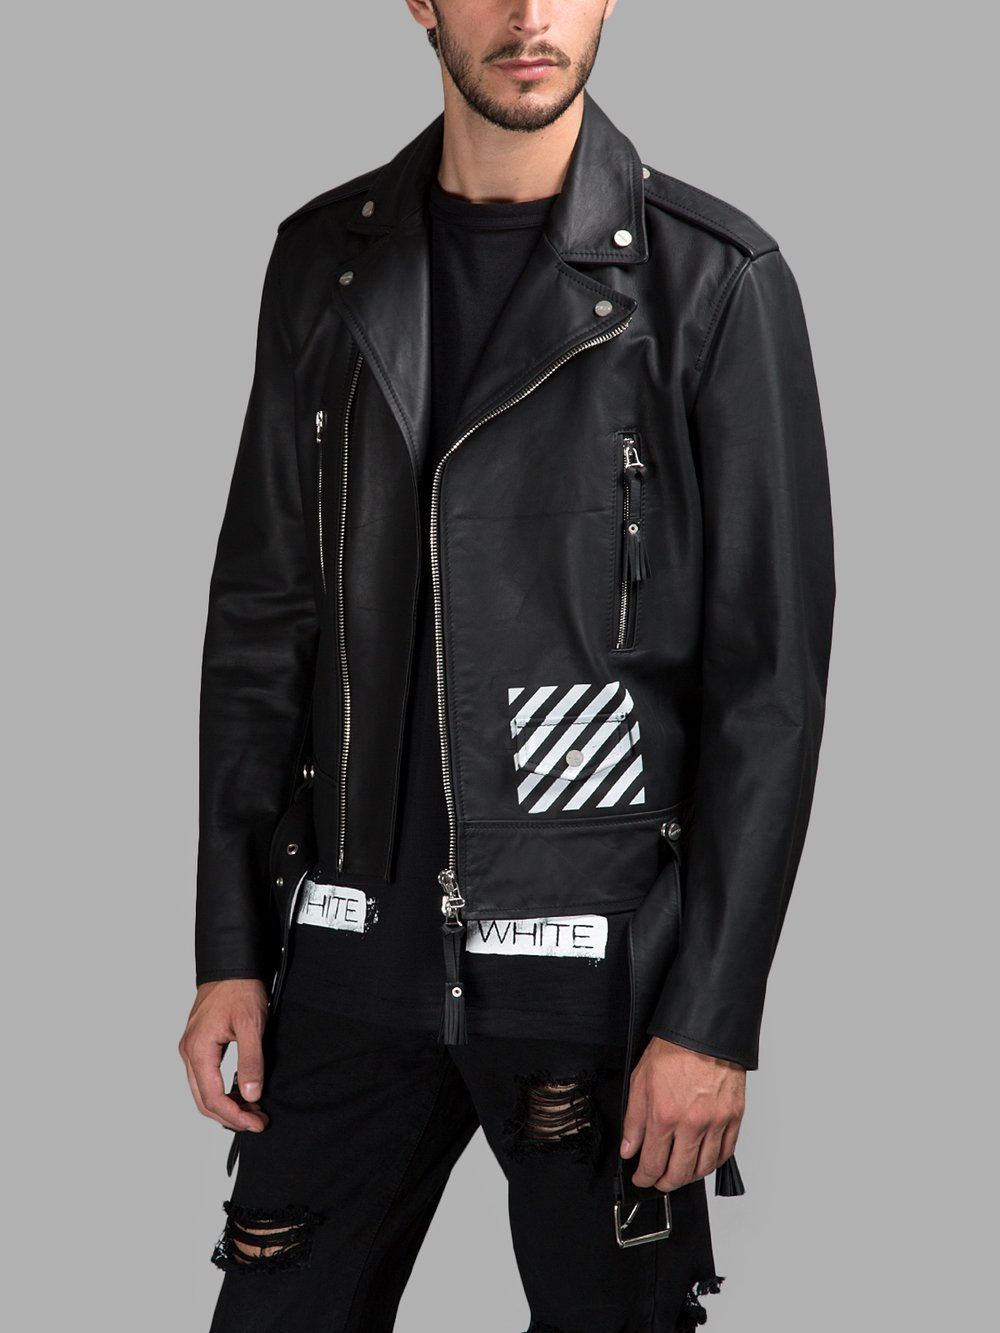 8b2eec5af Off-White c/o Virgil Abloh Leather Jackets CM500101 05